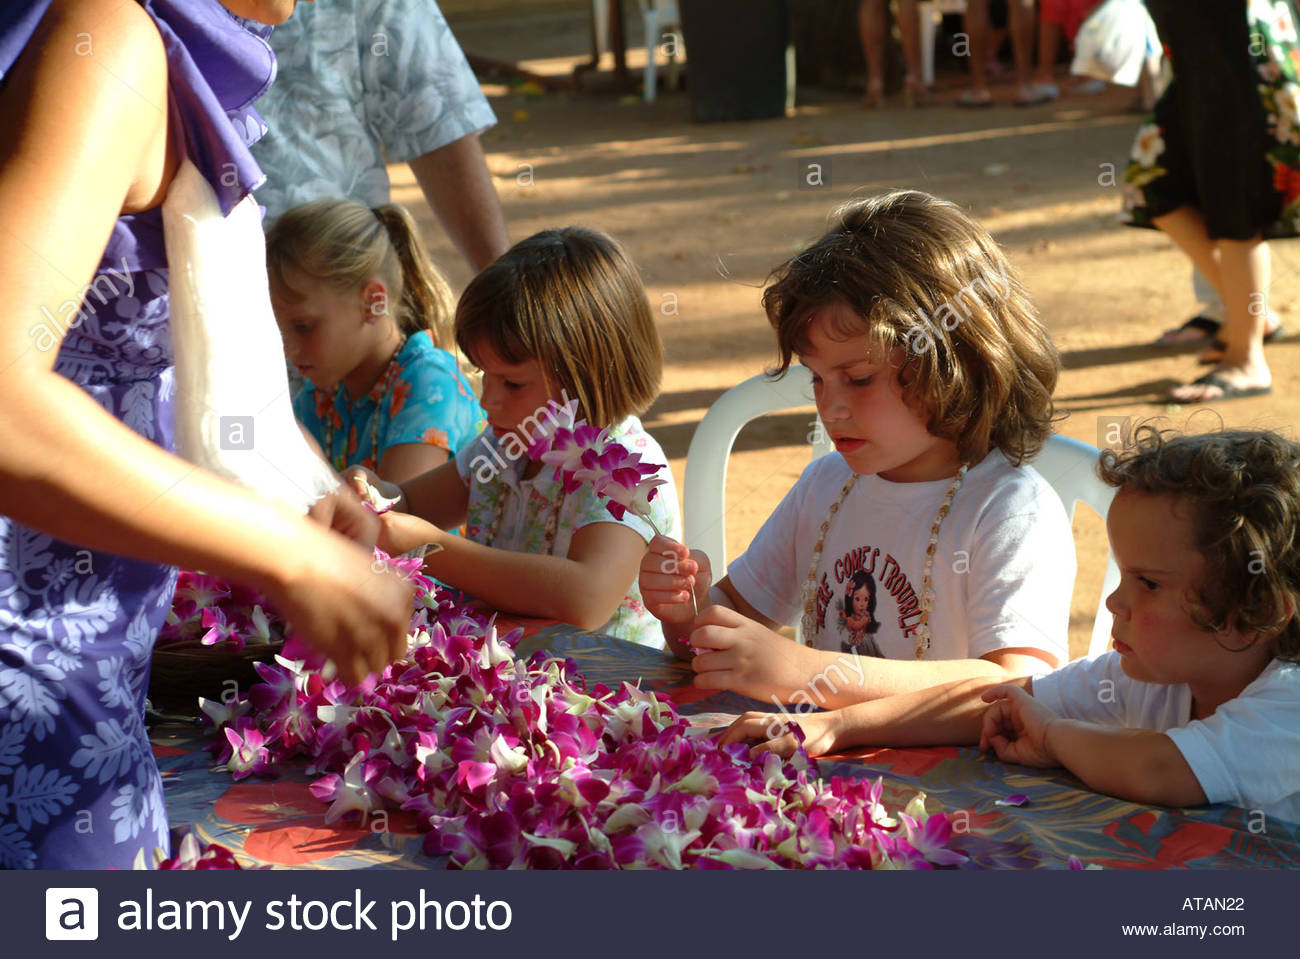 Young vistors learning how to make lei flower necklace stock photo young vistors learning how to make lei flower necklace izmirmasajfo